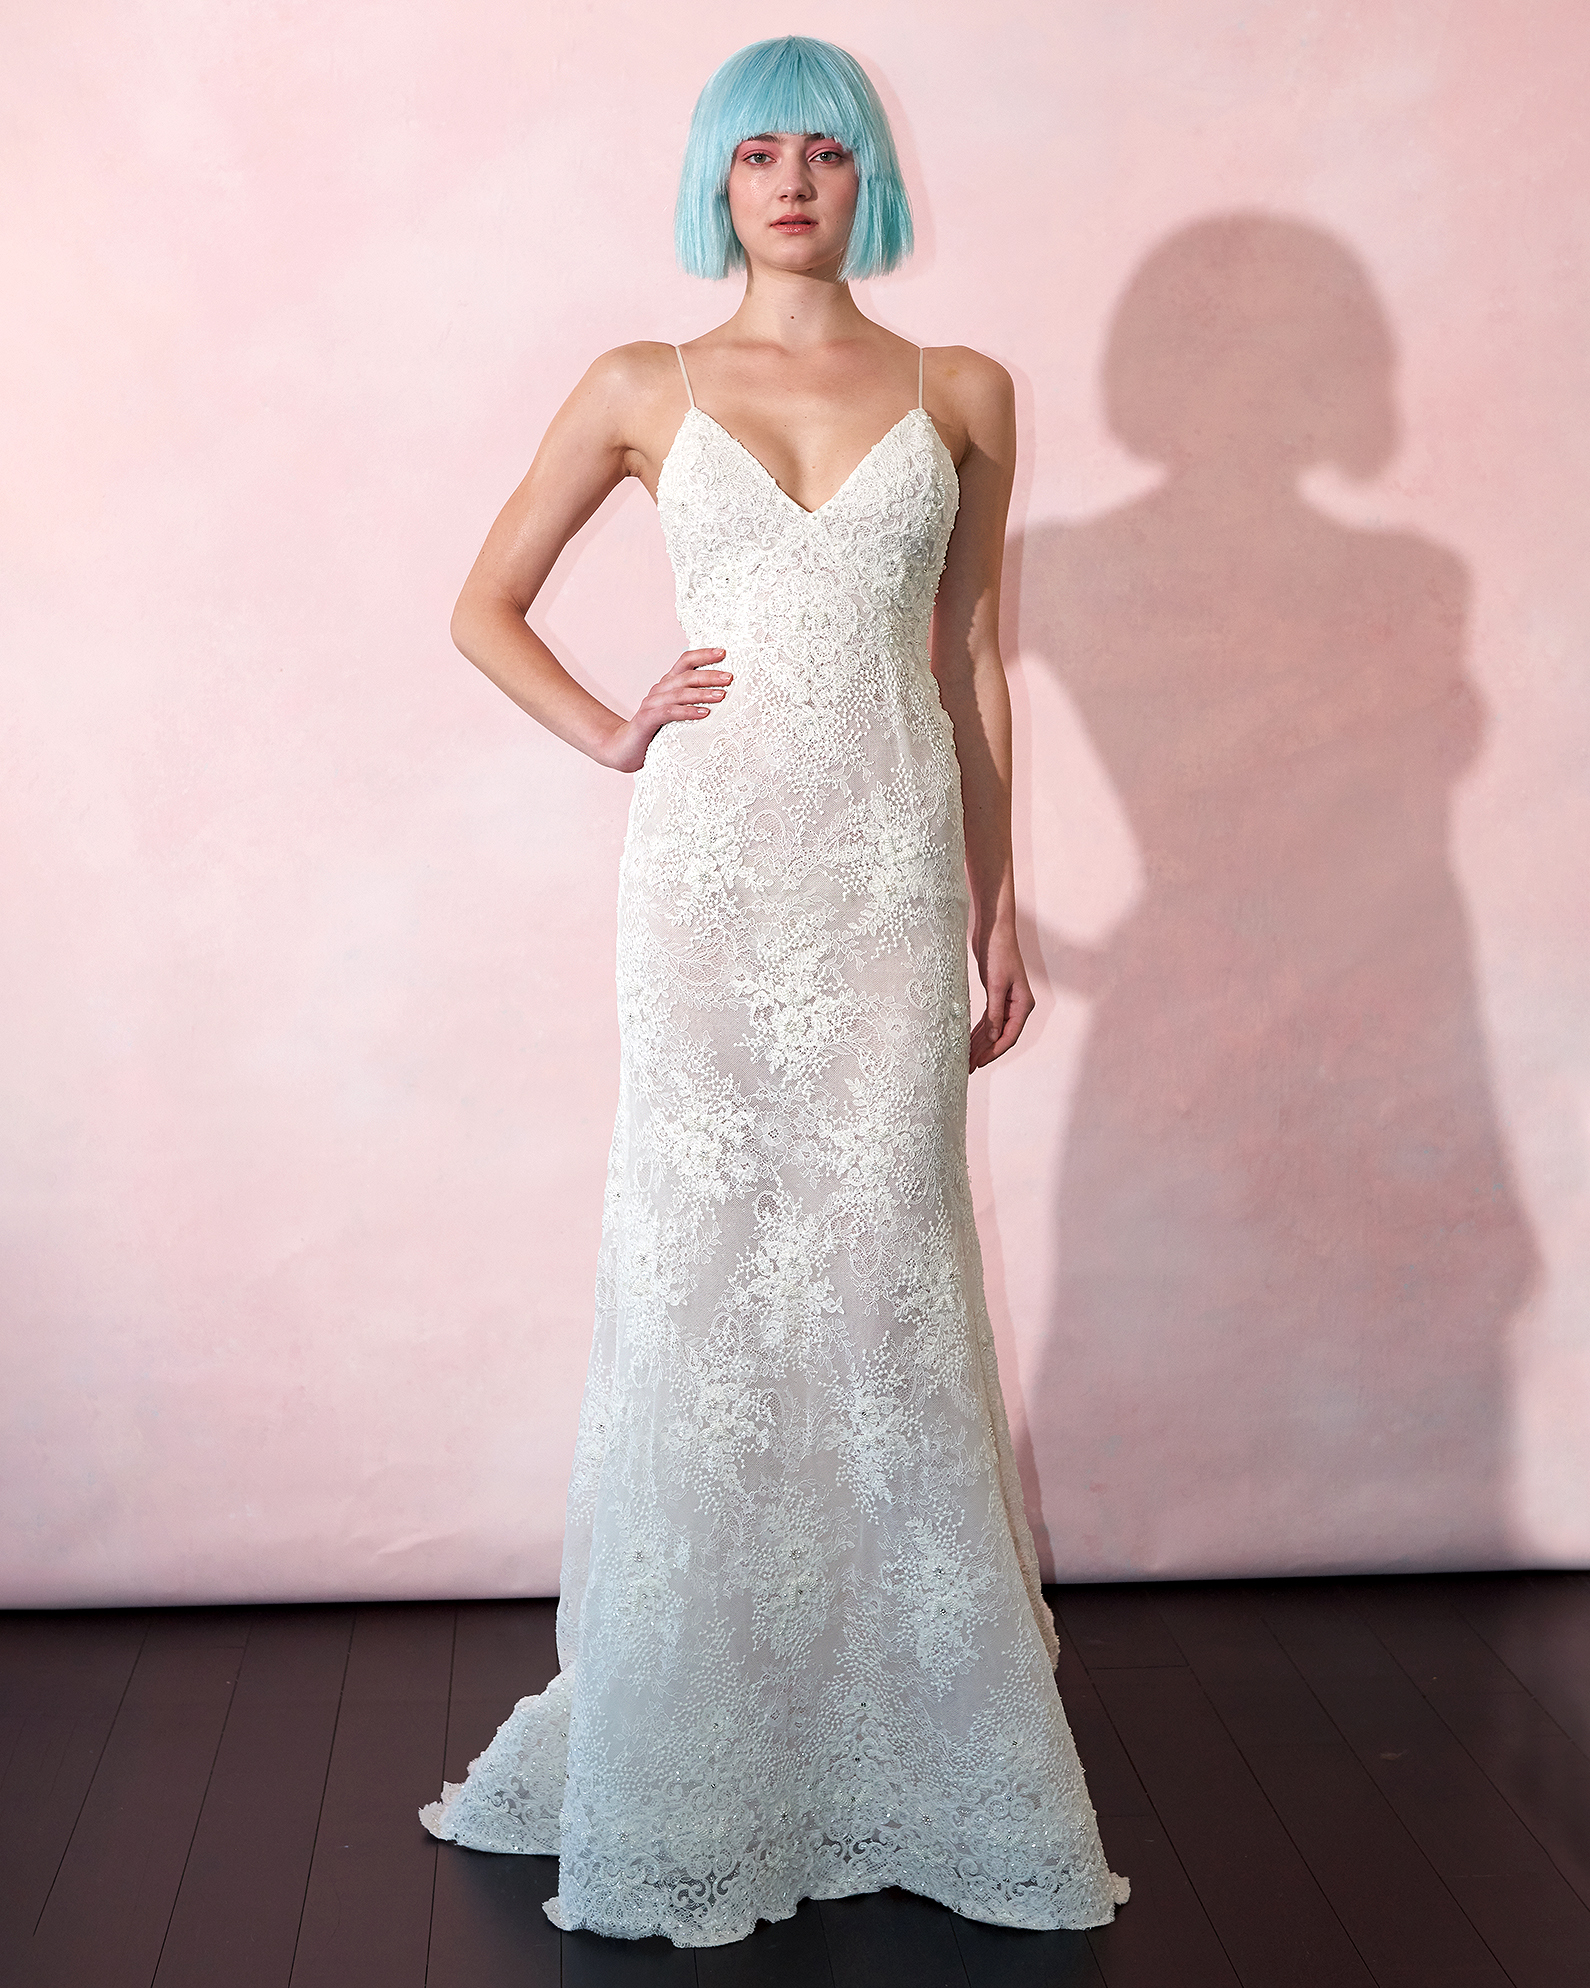 isabelle armstrong wedding dress spring 2019 spaghetti-strap v-neck sheath